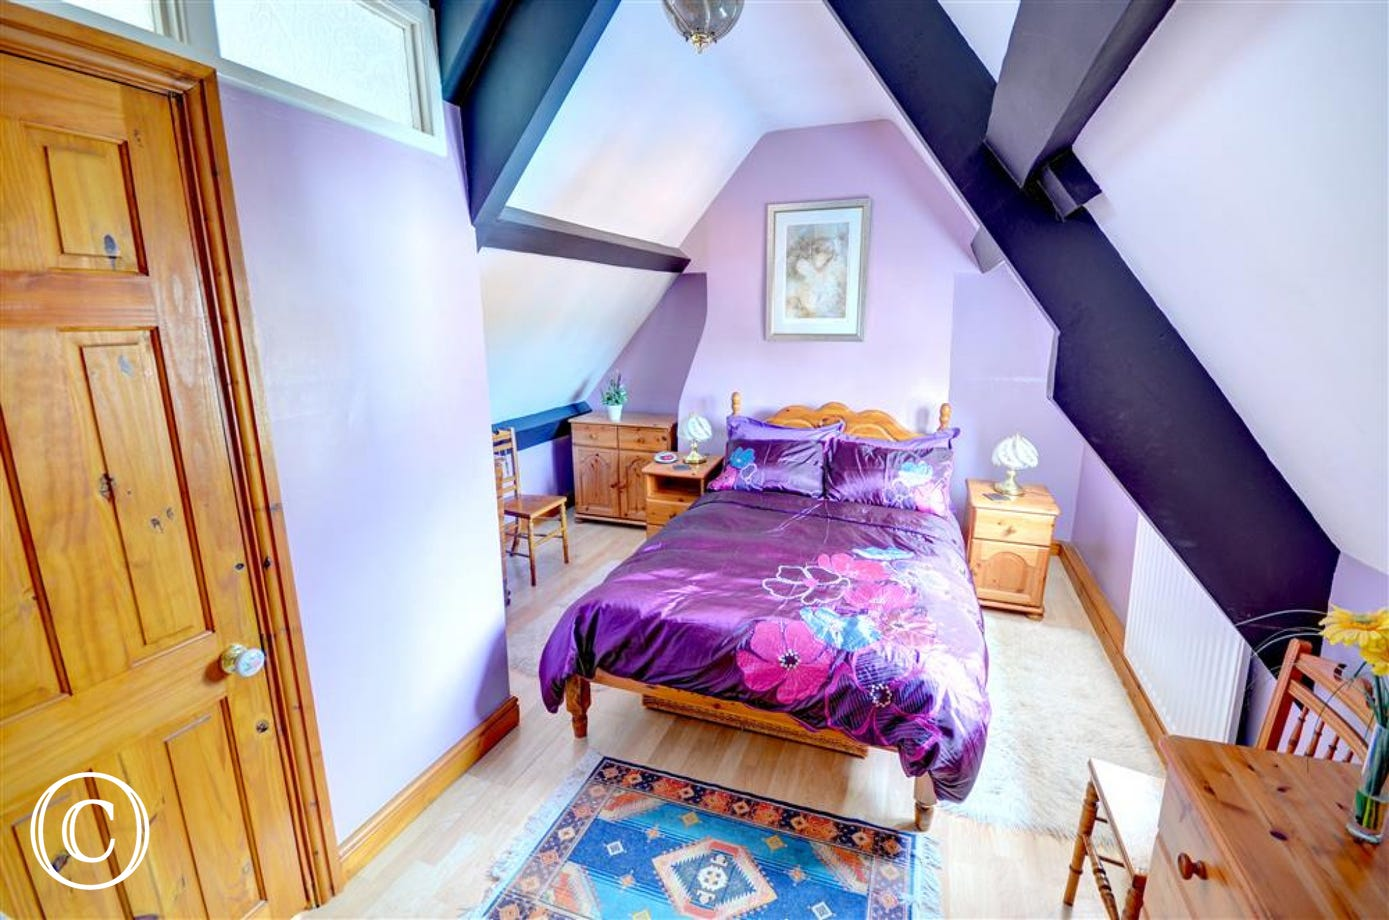 Attractive second floor bedroom which has views looking towards Whitby Abbey in the distance. There is also access to the En-suite Shower Room.